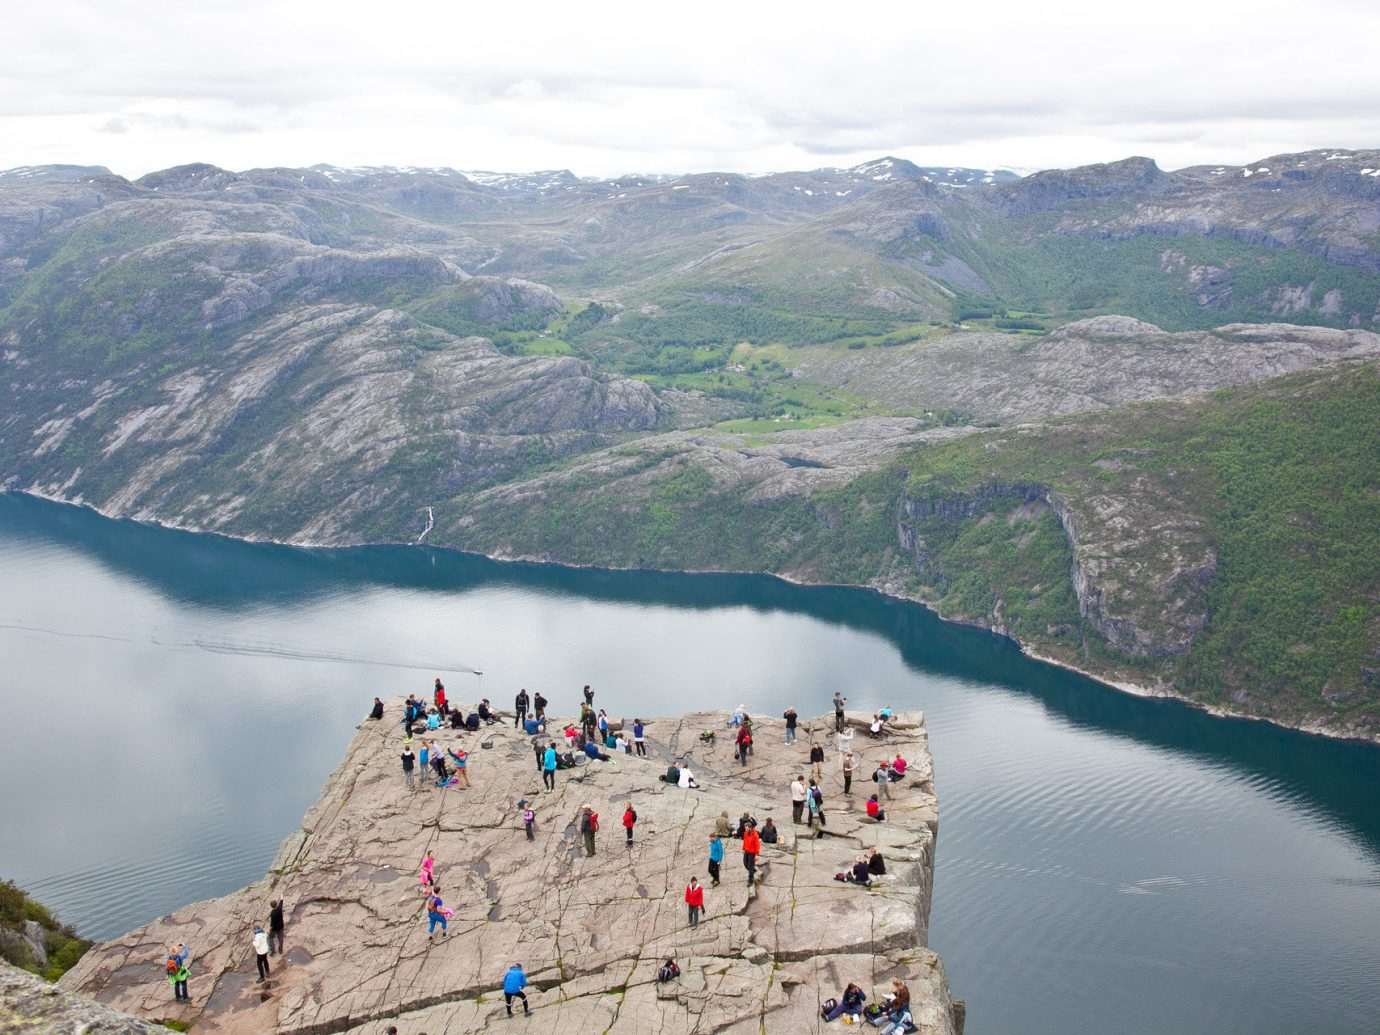 Cliffs Mountains Outdoor Activities Outdoors overlook people Scenic views Trip Ideas view viewpoint mountain Nature water mountainous landforms outdoor landform Lake fjord mountain range loch reservoir aerial photography glacial landform mountain pass alps terrain crater lake